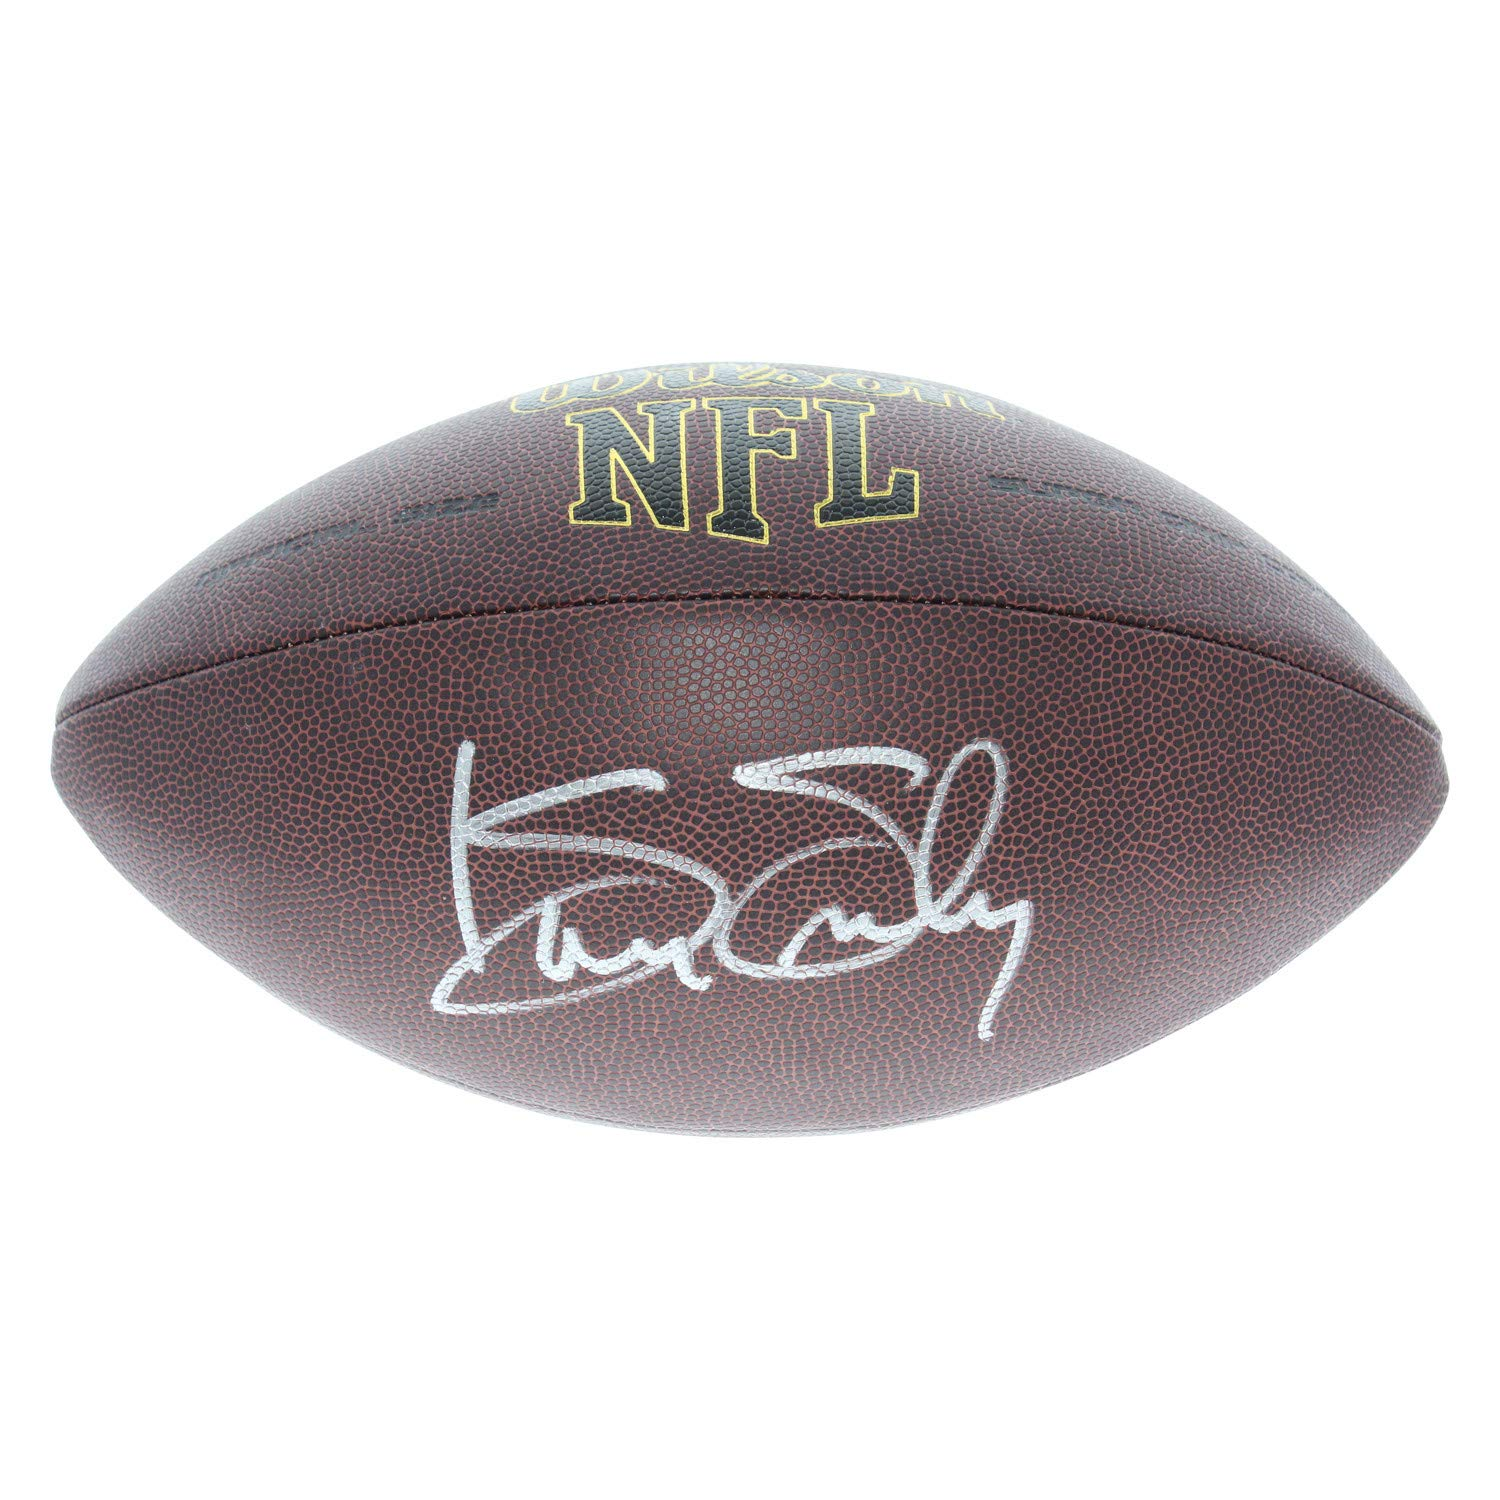 Kenny Easley Seattle Seahawks Autographed Signed Wilson NFL Super Grip Football - PSA/DNA Certified Authentic